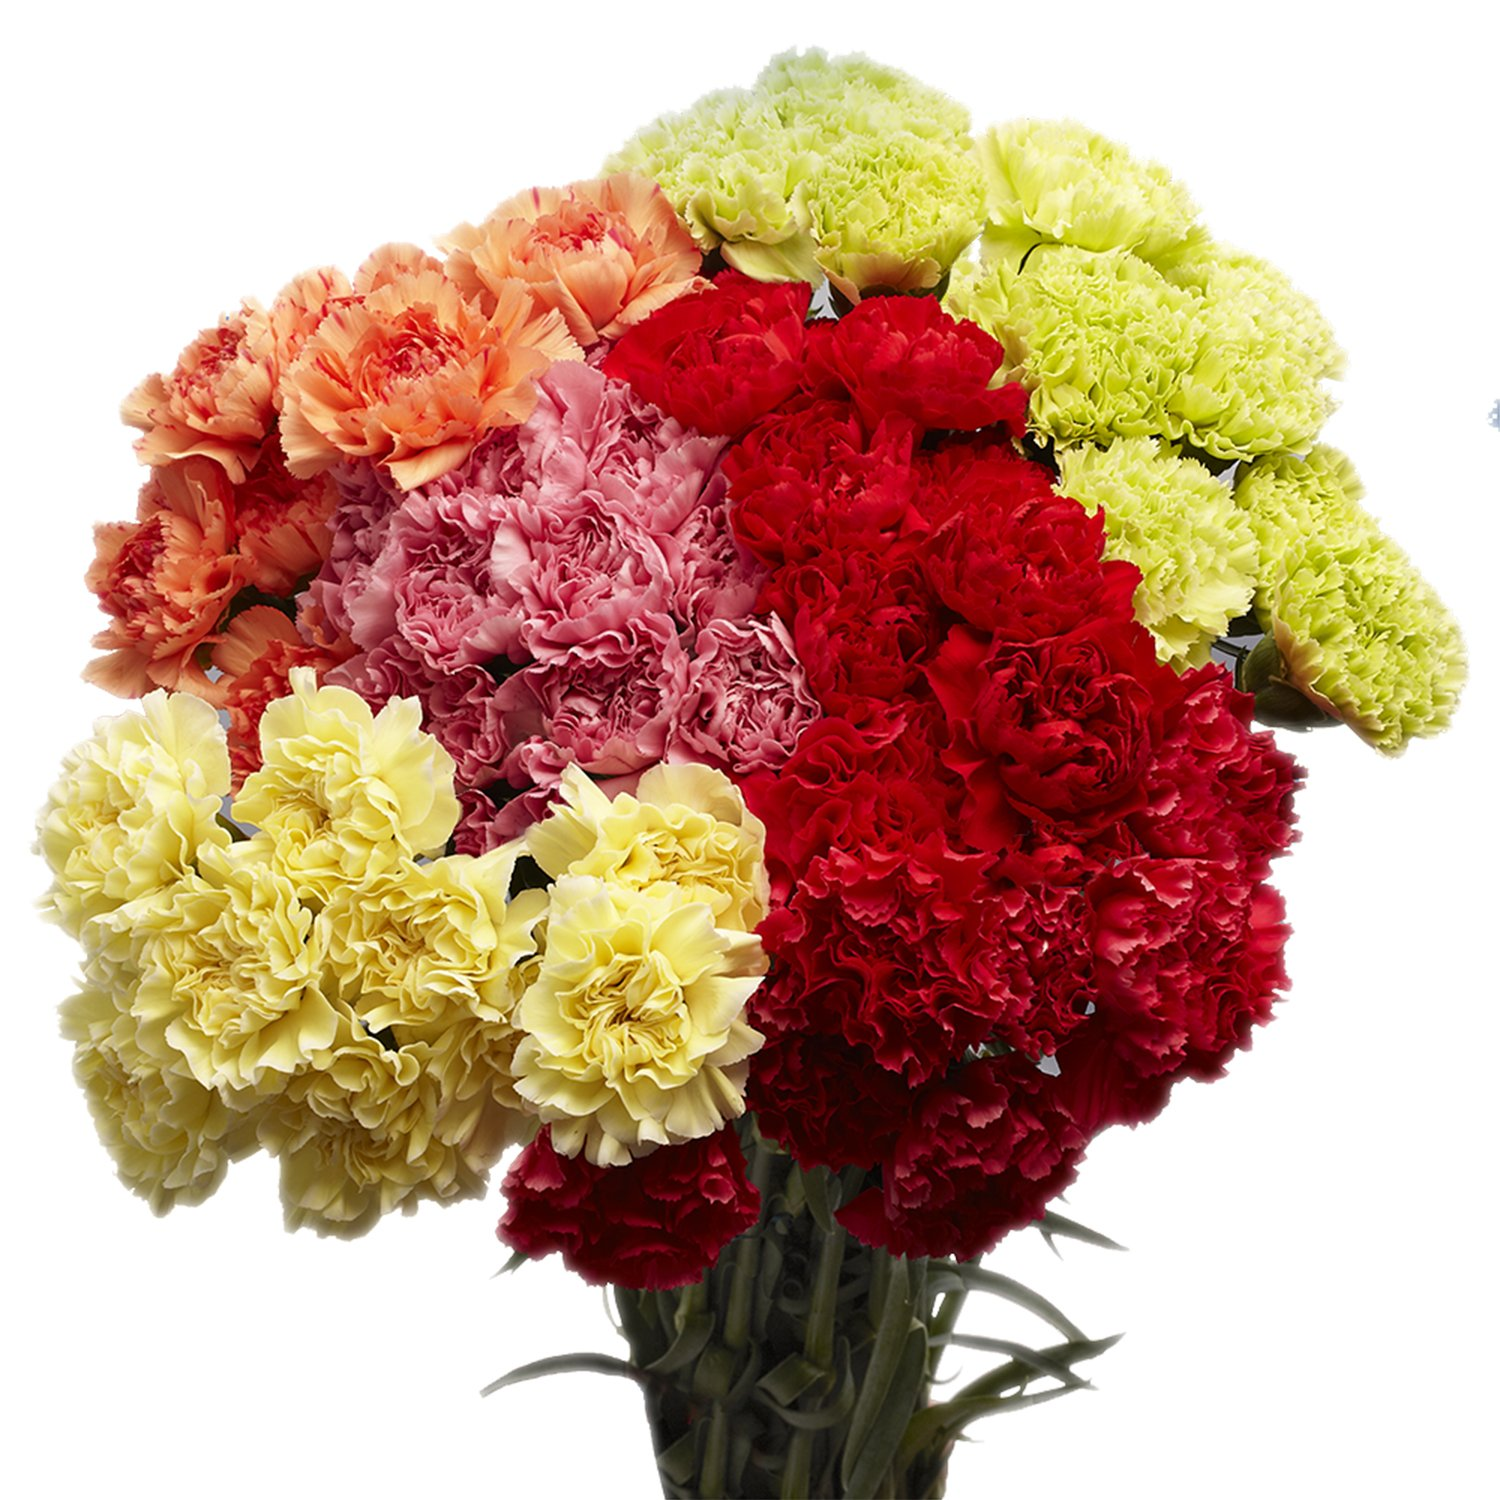 GlobalRose Assorted Carnations- Wholesale Flower Delivery- 200 Stems by GlobalRose